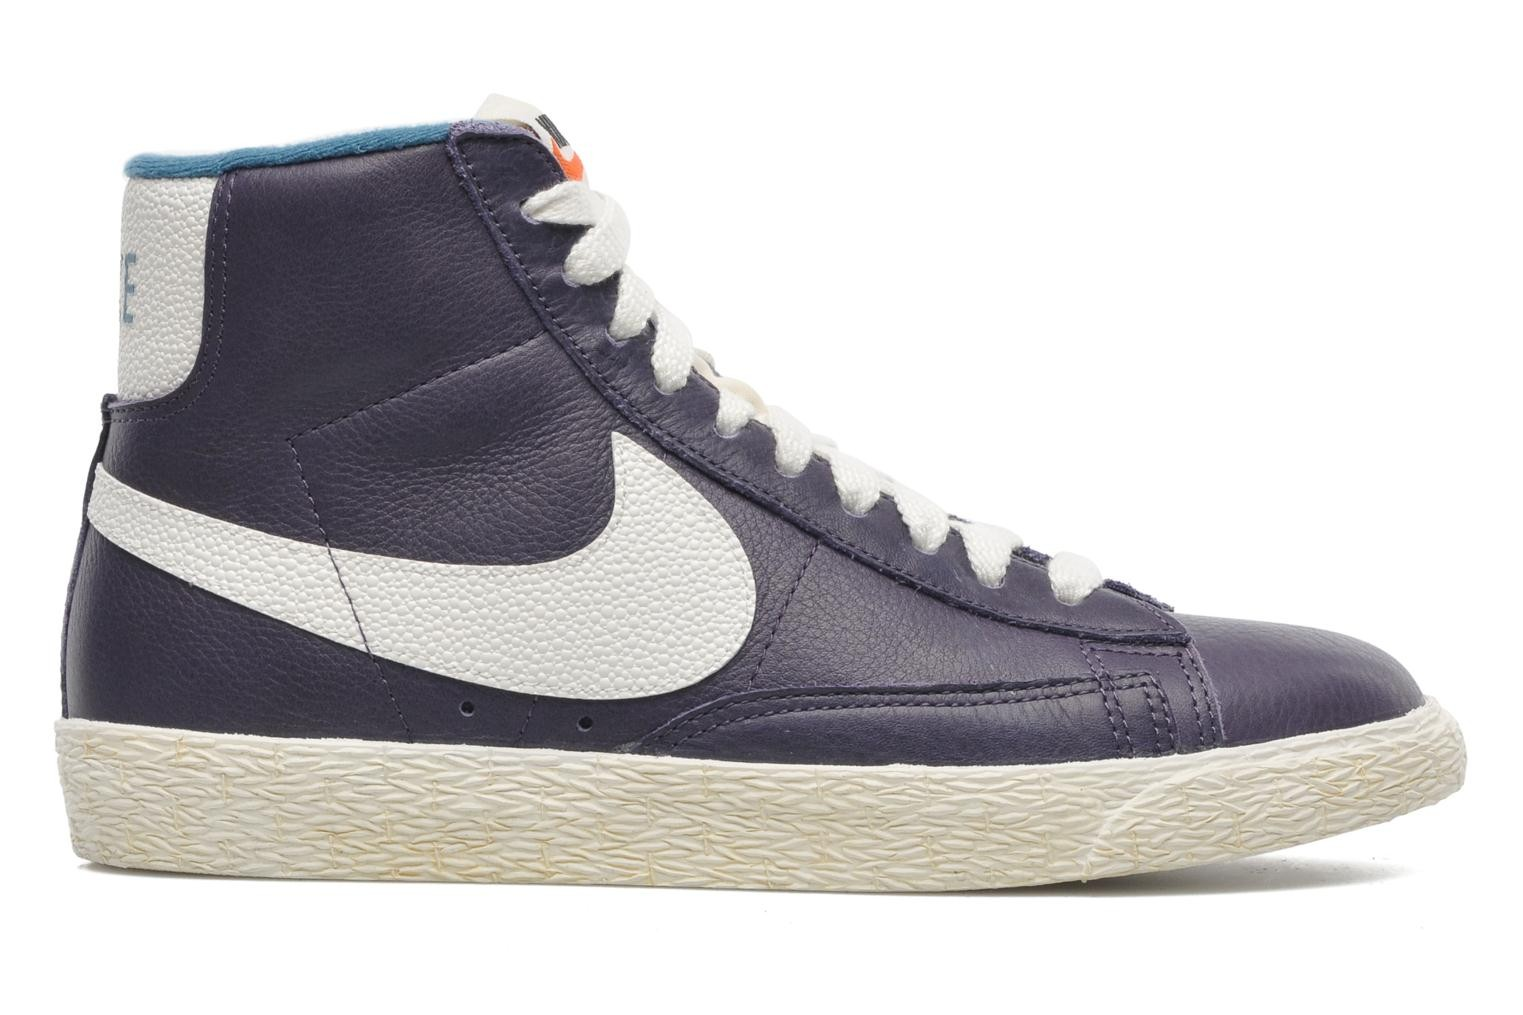 the latest 56ca3 d8441 Nike WMNS Blazer Mid Leather (Lthr) Vintage Dark Raisin Sail Sail Riftblue  Womens Shoe